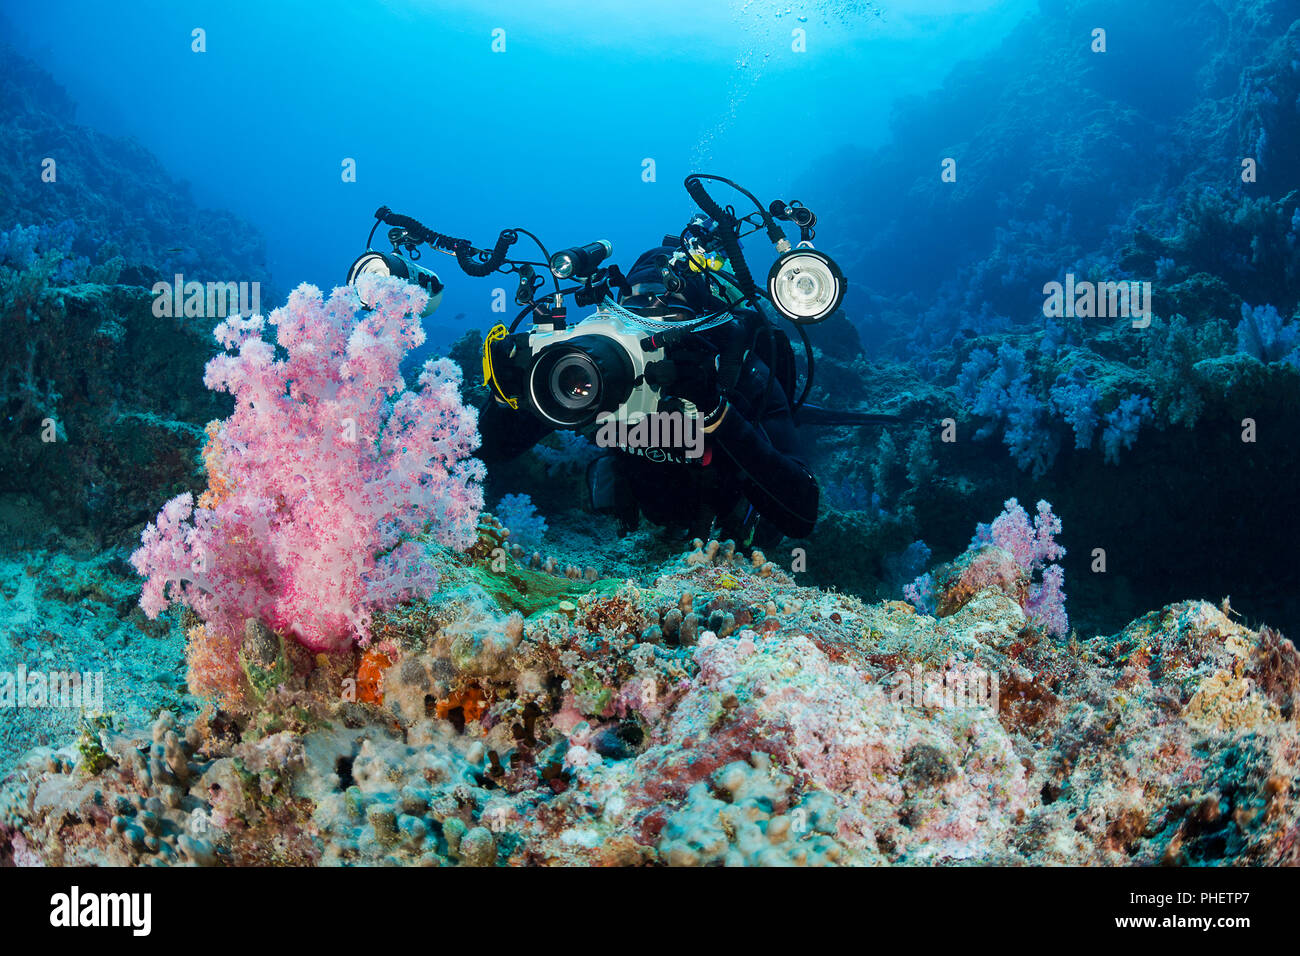 A diver (MR) lines up on soft coral with his SLR camera in an underwater housing with strobes aimed at some alcyonarian soft coral off the island of Y - Stock Image